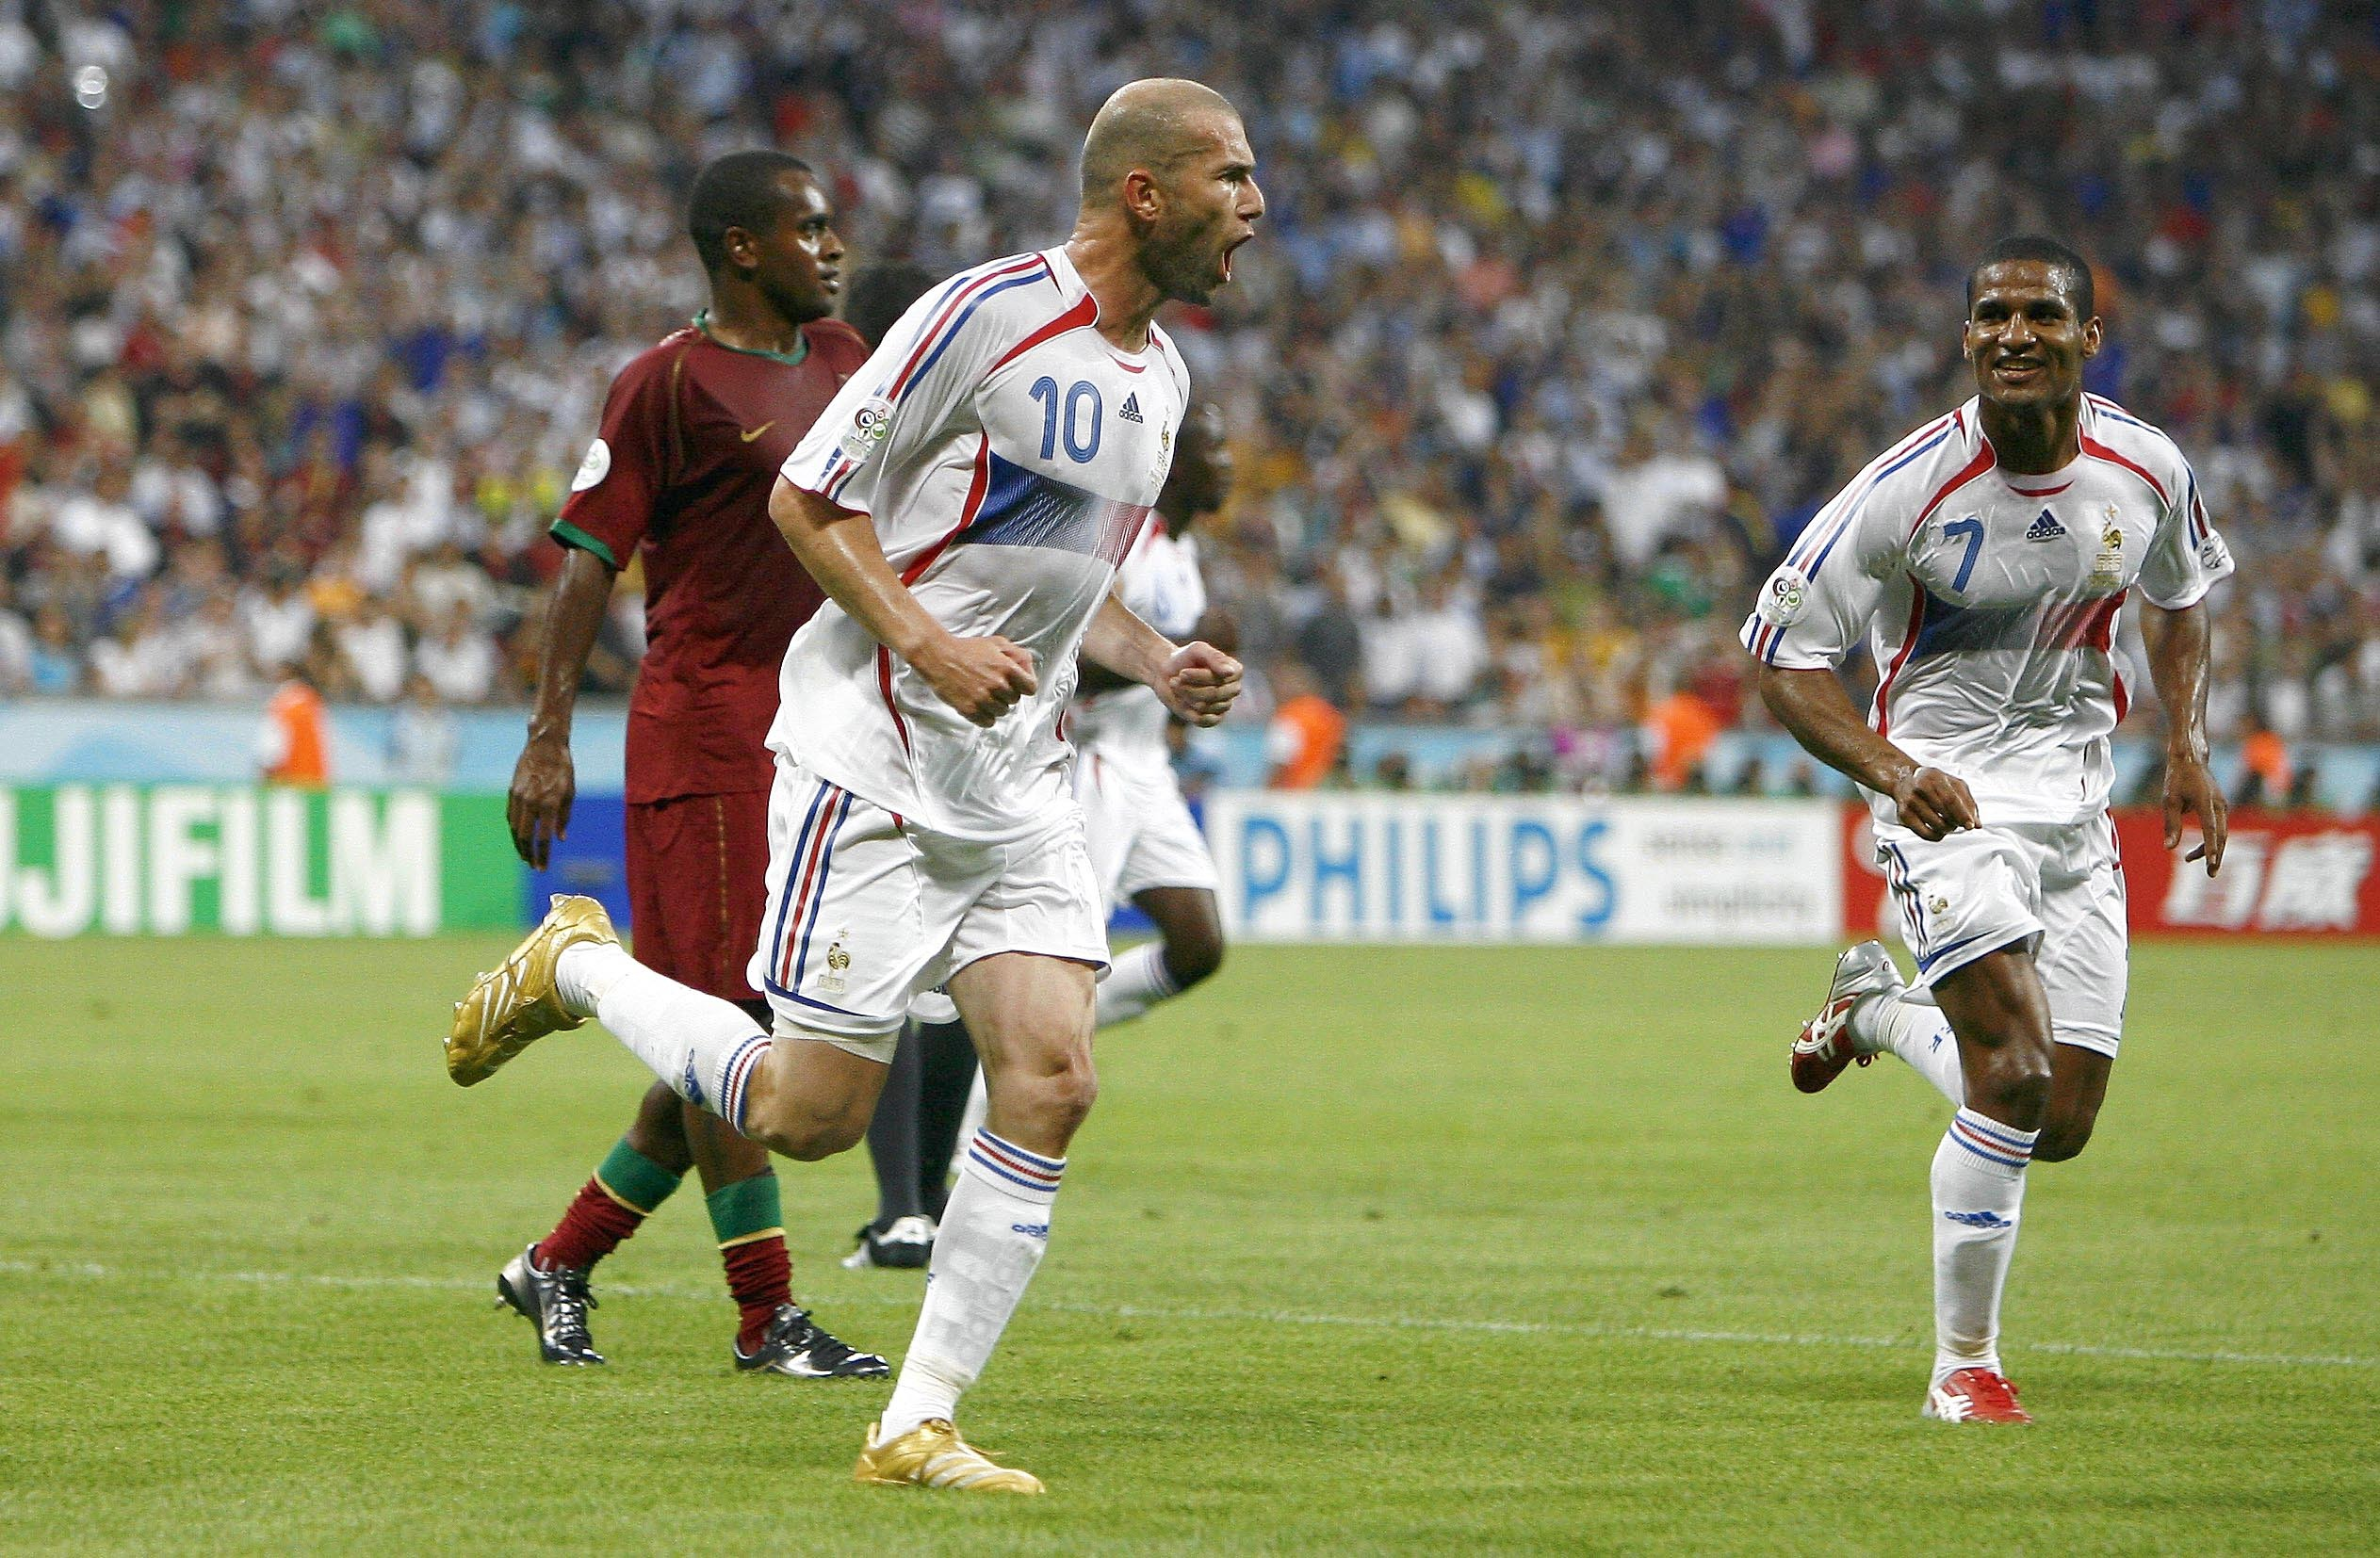 Zidane scored a penalty against Portugal in the semi-final. Image: PA Images